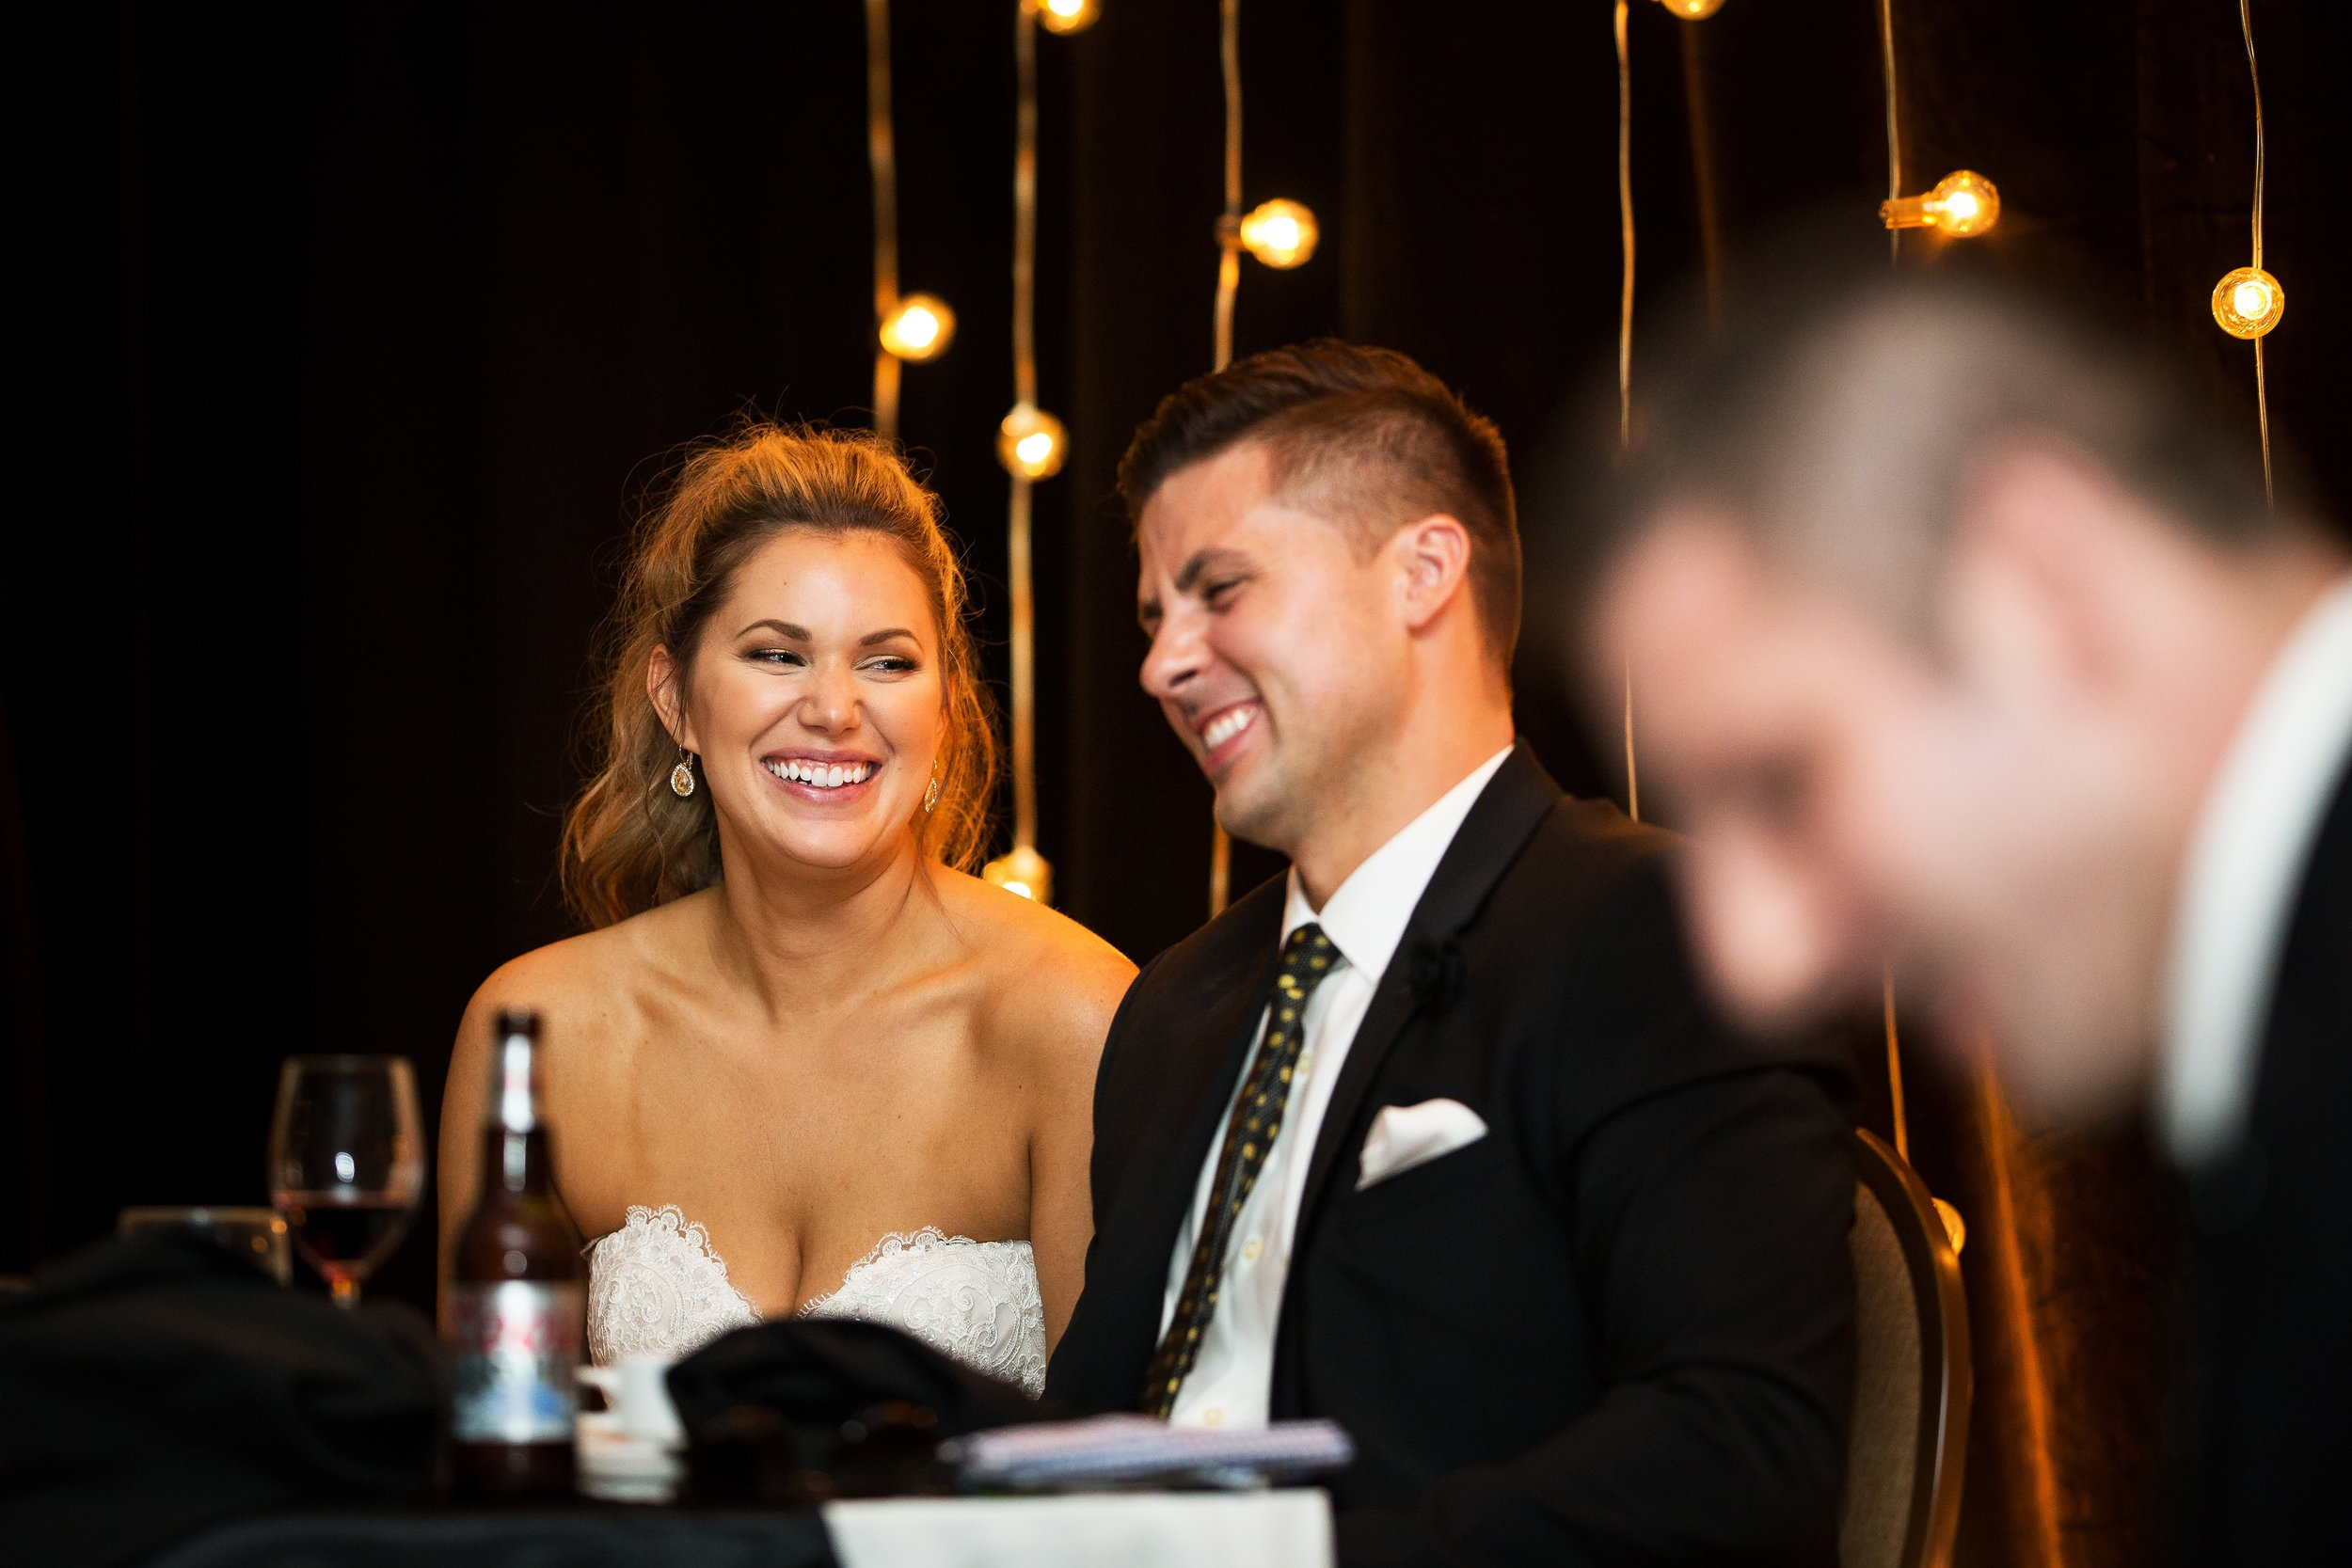 Bride and Groom Laughs at Toast